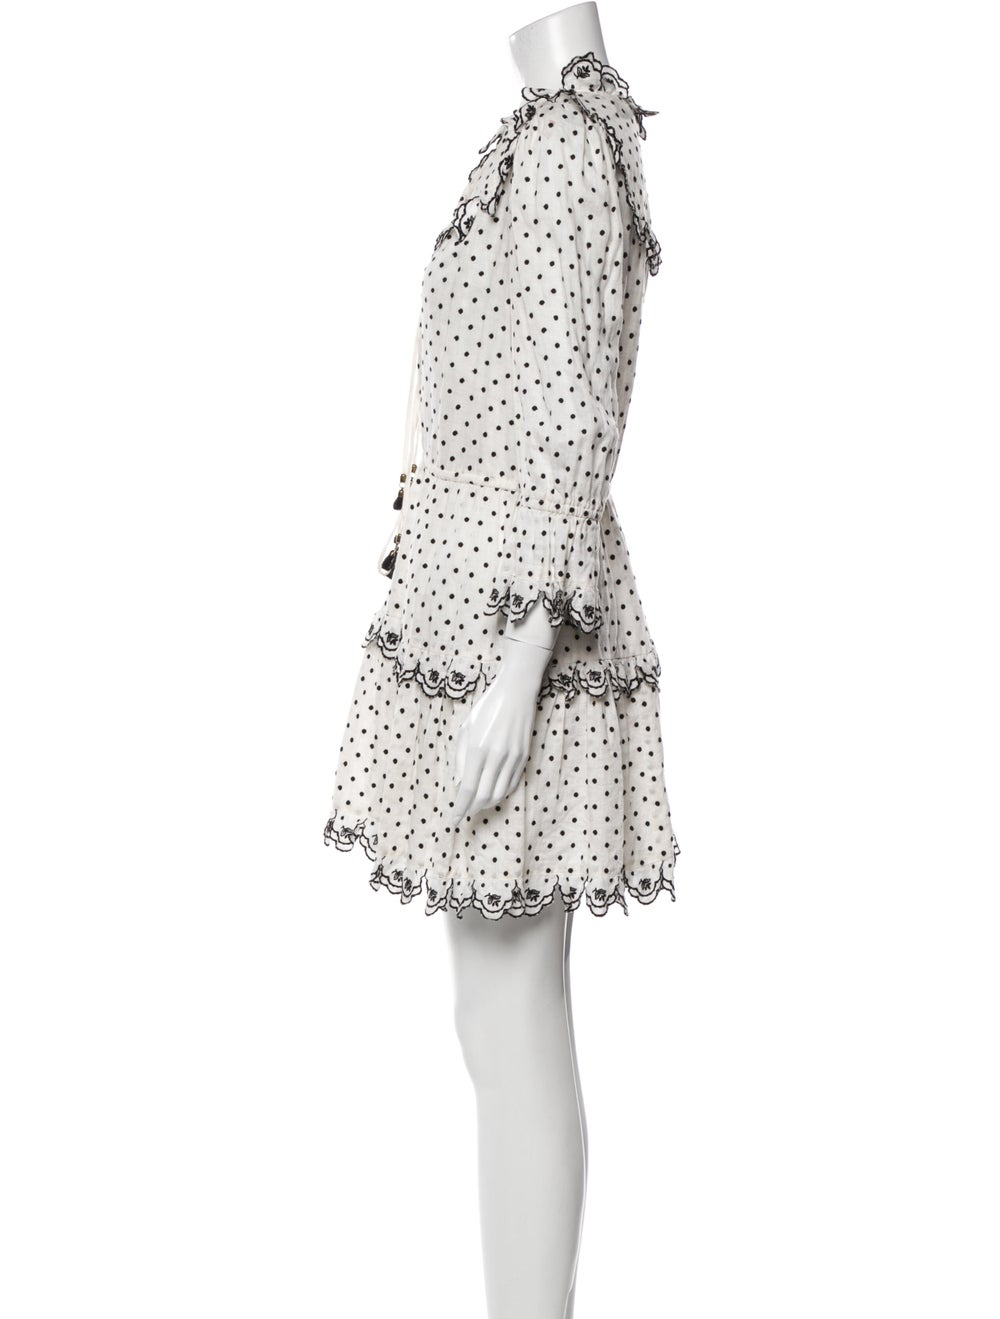 Zimmermann Linen Mini Dress White - image 2